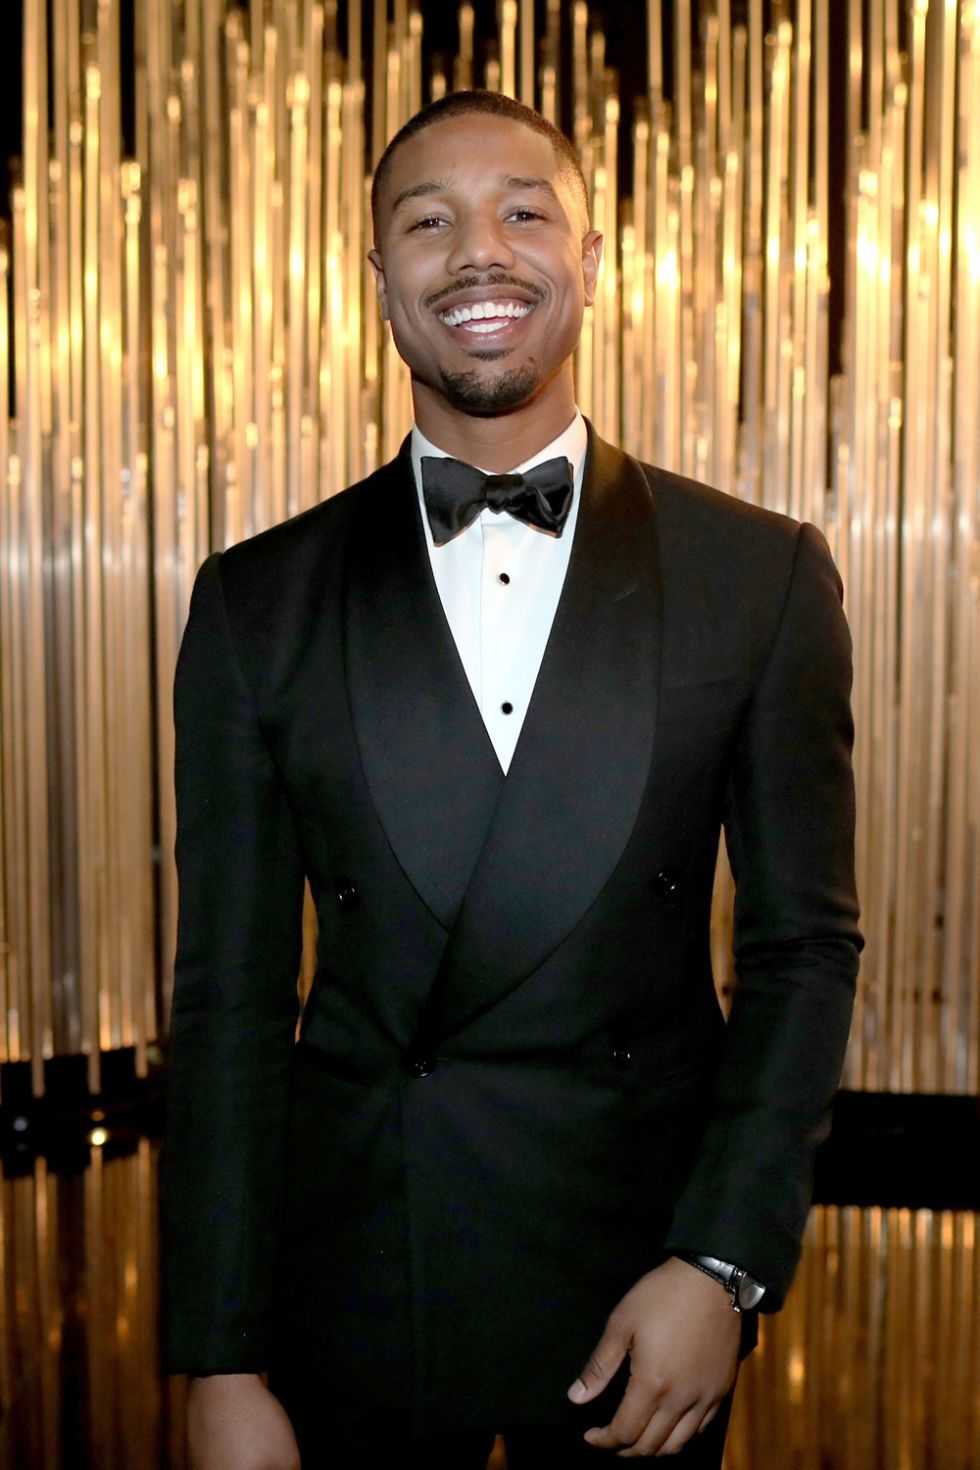 f48d233409dad4 20 Style Lessons You Can Learn from the Men of the Oscars | Men's ...